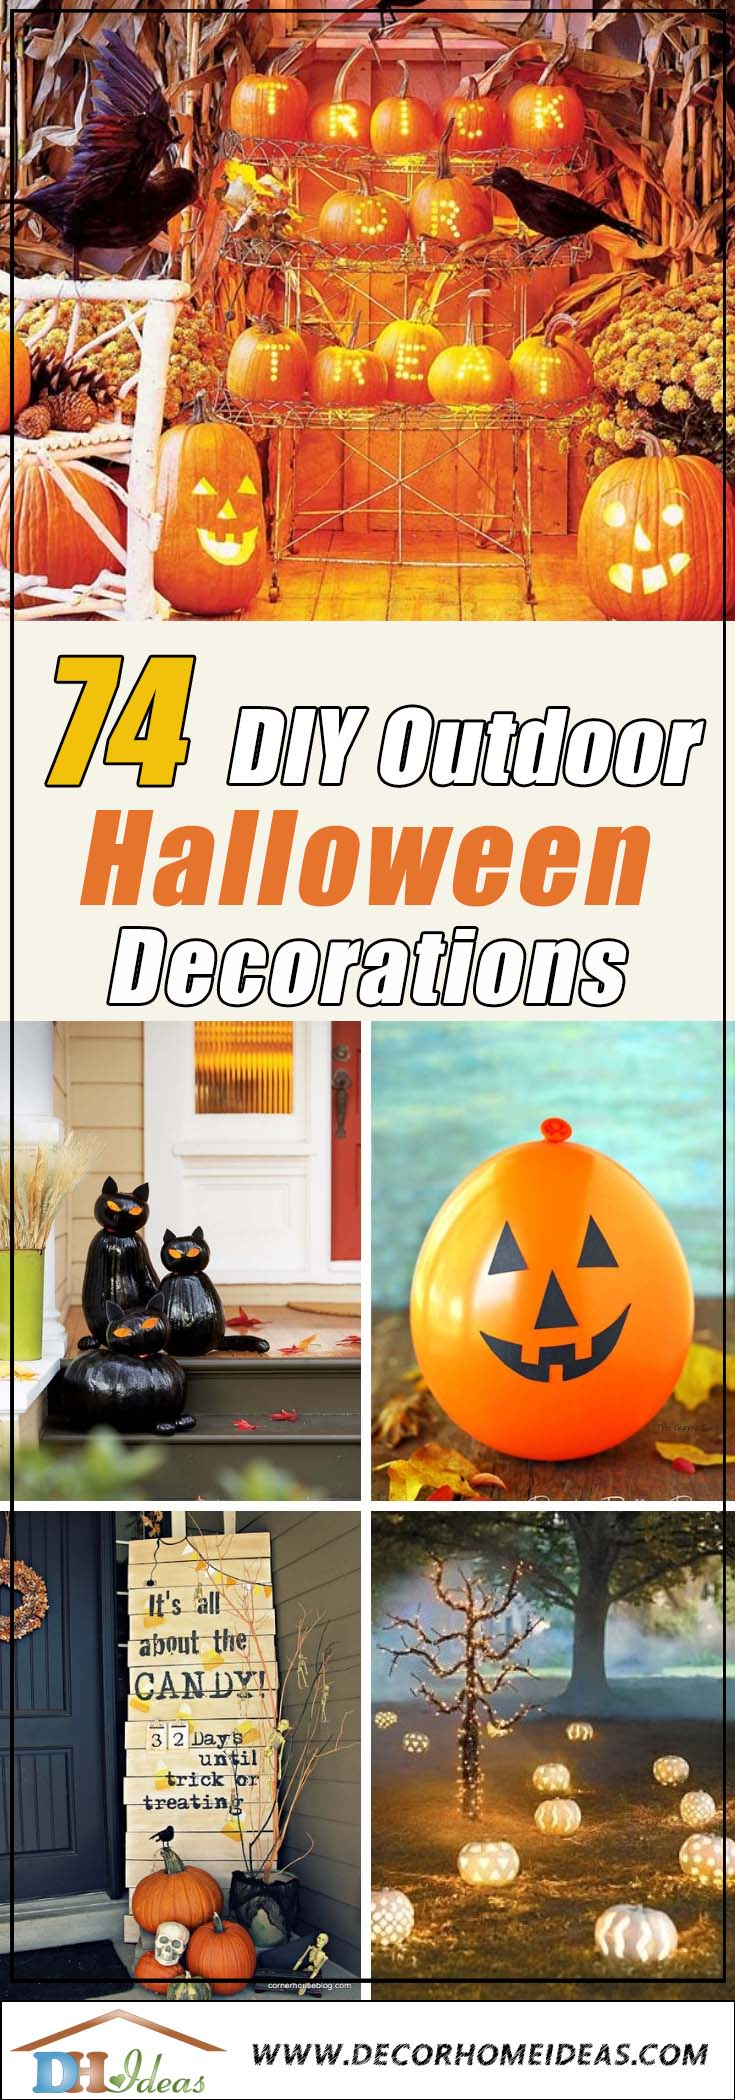 74 Best Diy Outdoor Halloween Decorations Complete List For 2021 Decor Home Ideas